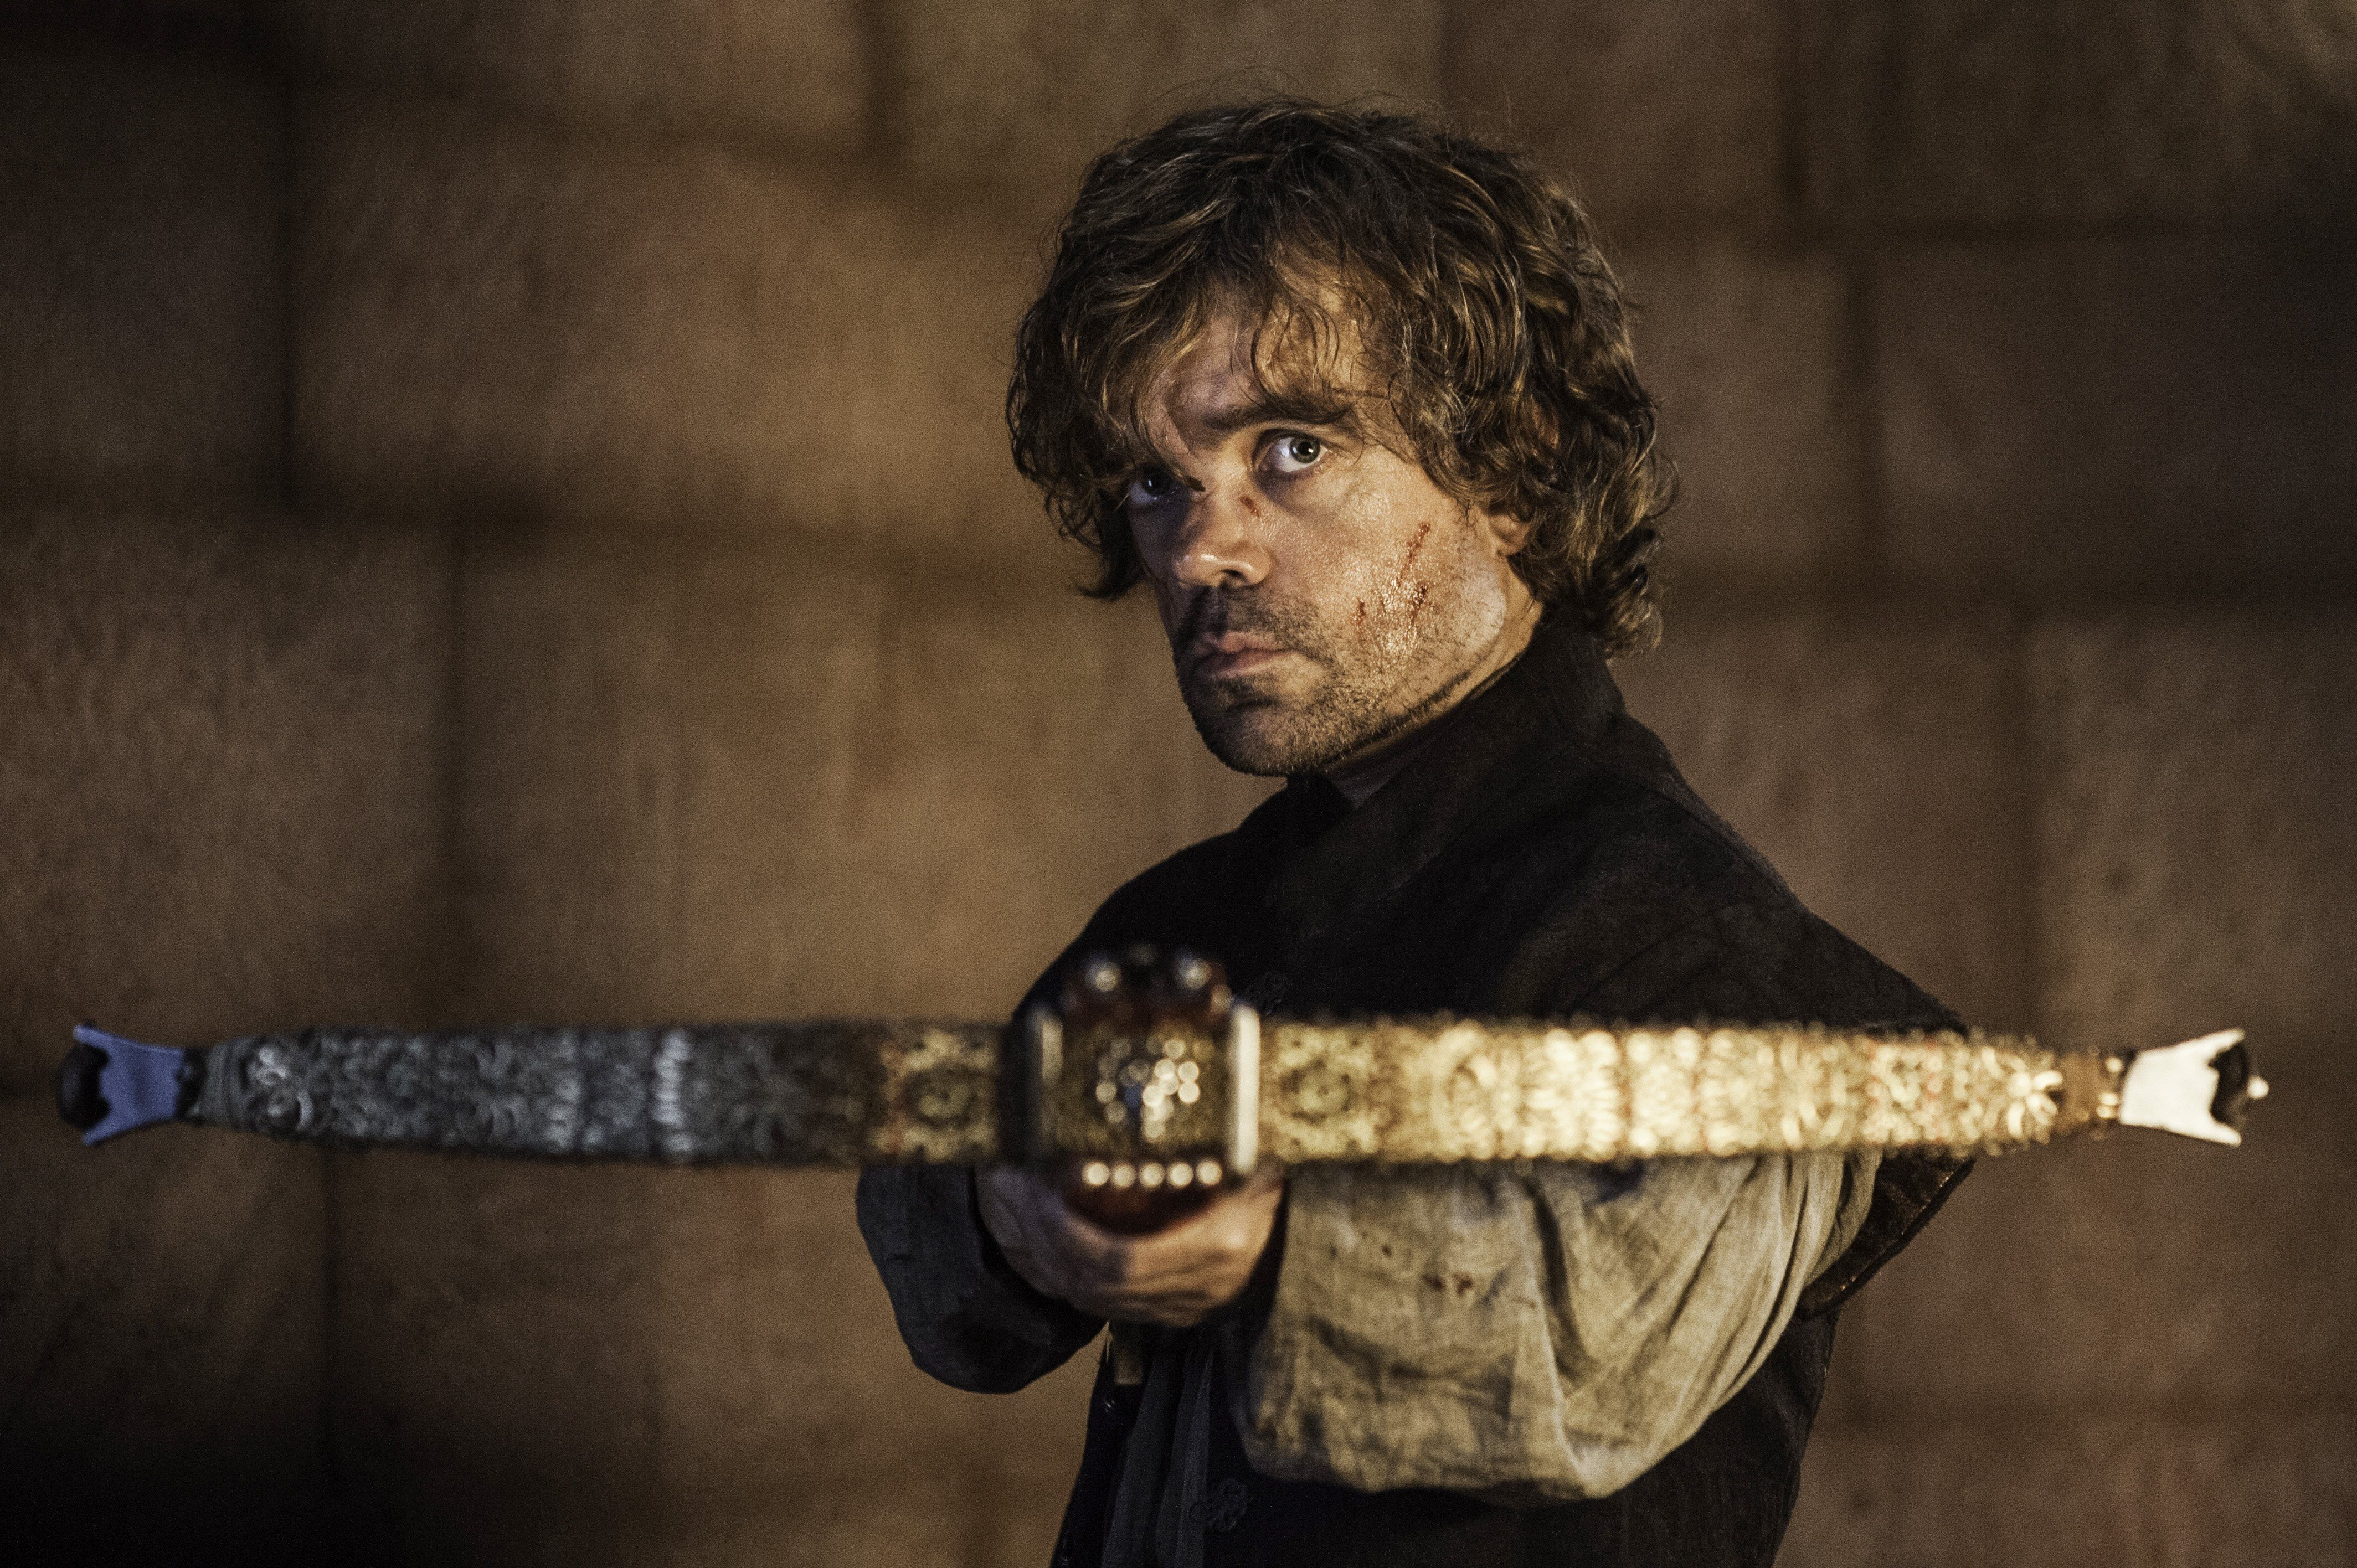 Imping Ain't Easy—An Evening with Tyrion Lannister Daario Naharis